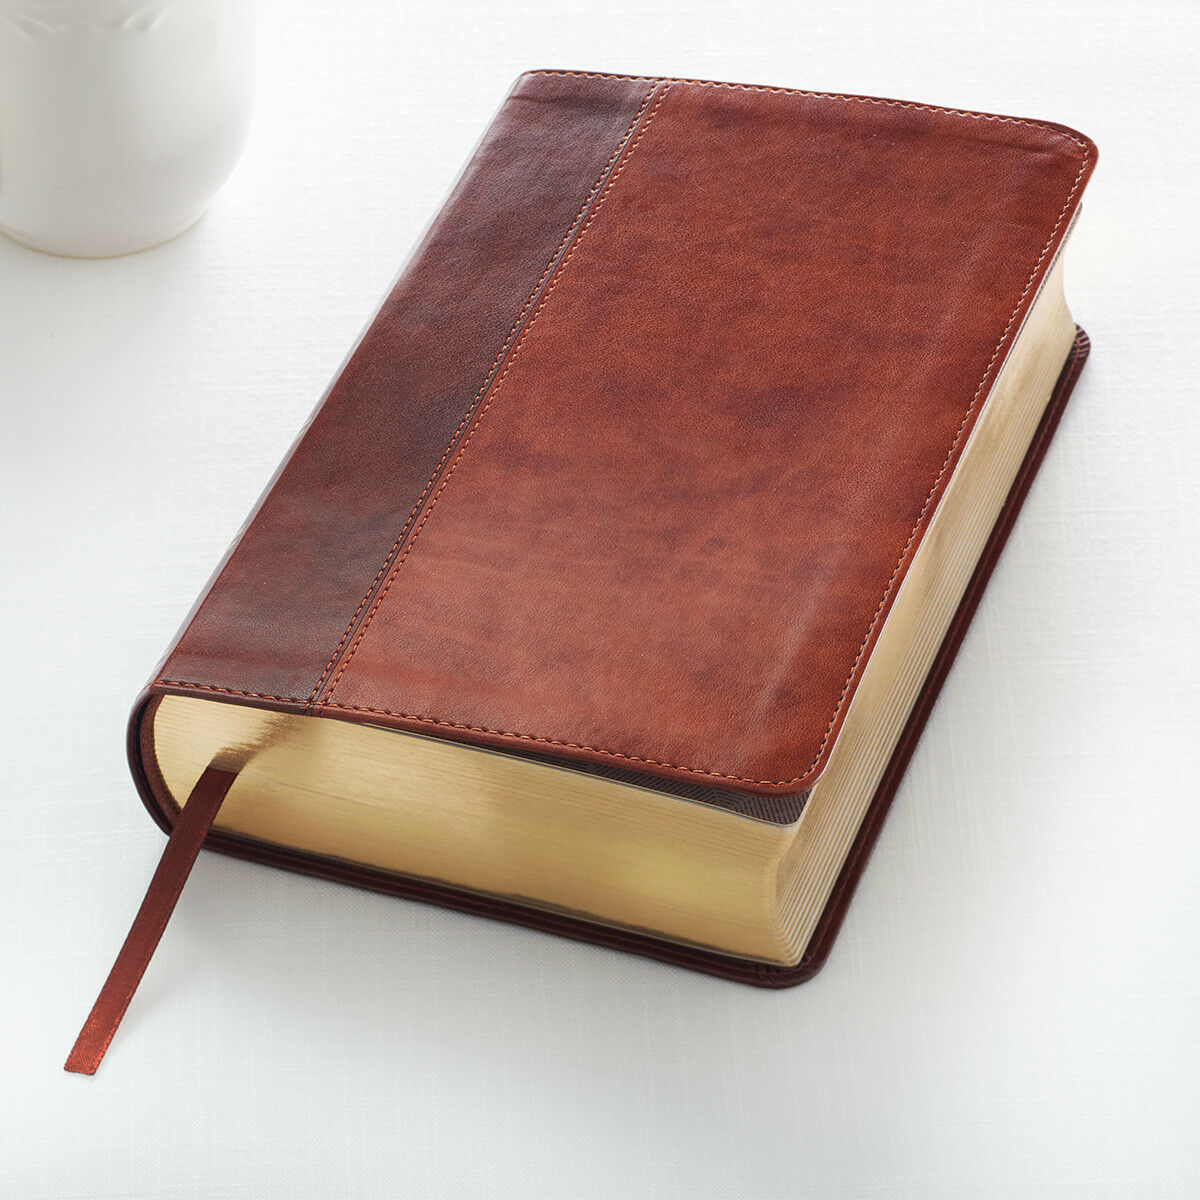 KJV Holy Bible King James Version Two-Tone Tan / Brown Giant Print Faux Leather